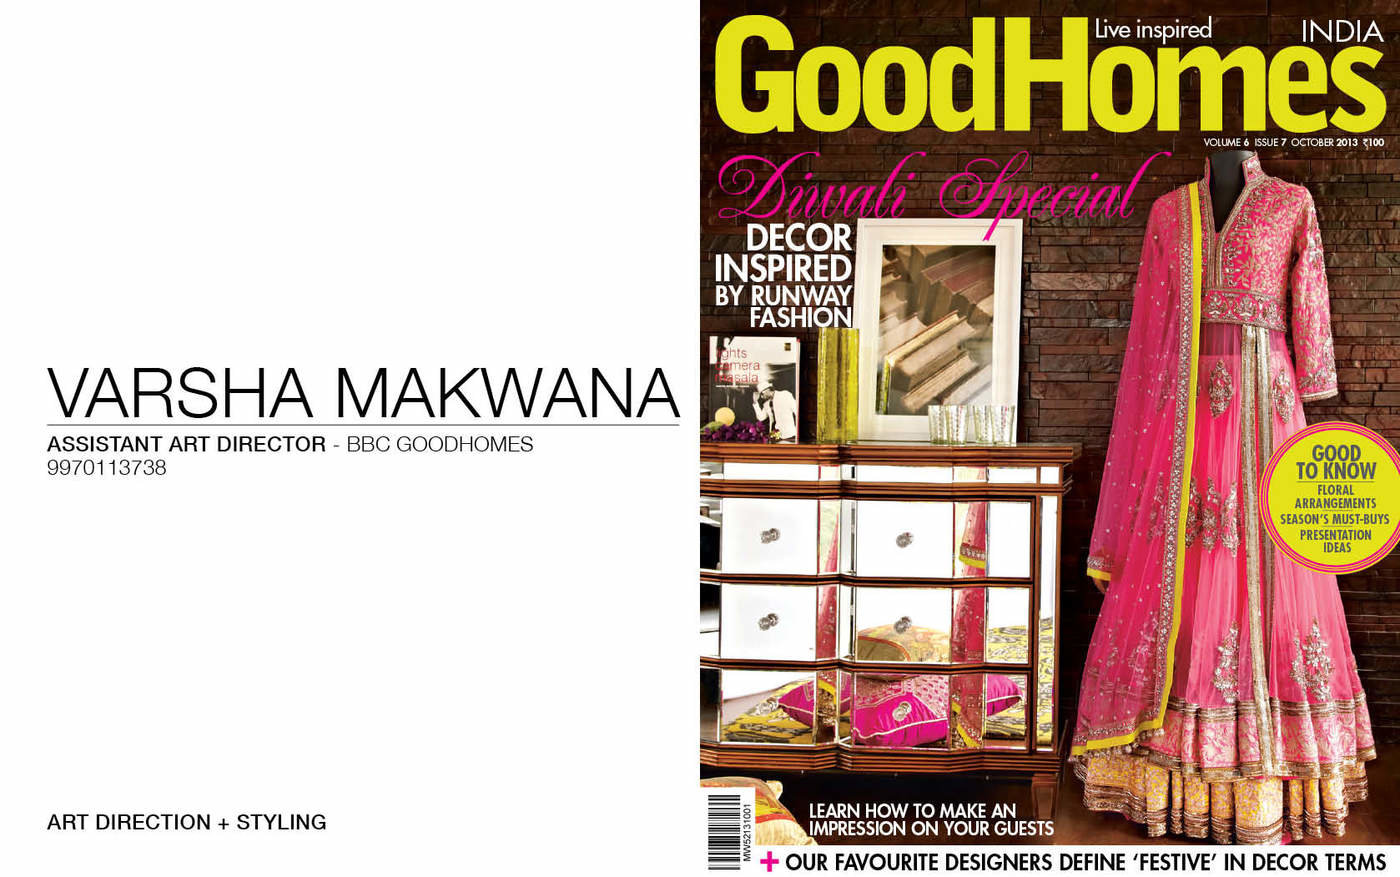 StylingFor Goodhomes Magazine by Varsha Makwana at Coroflot com